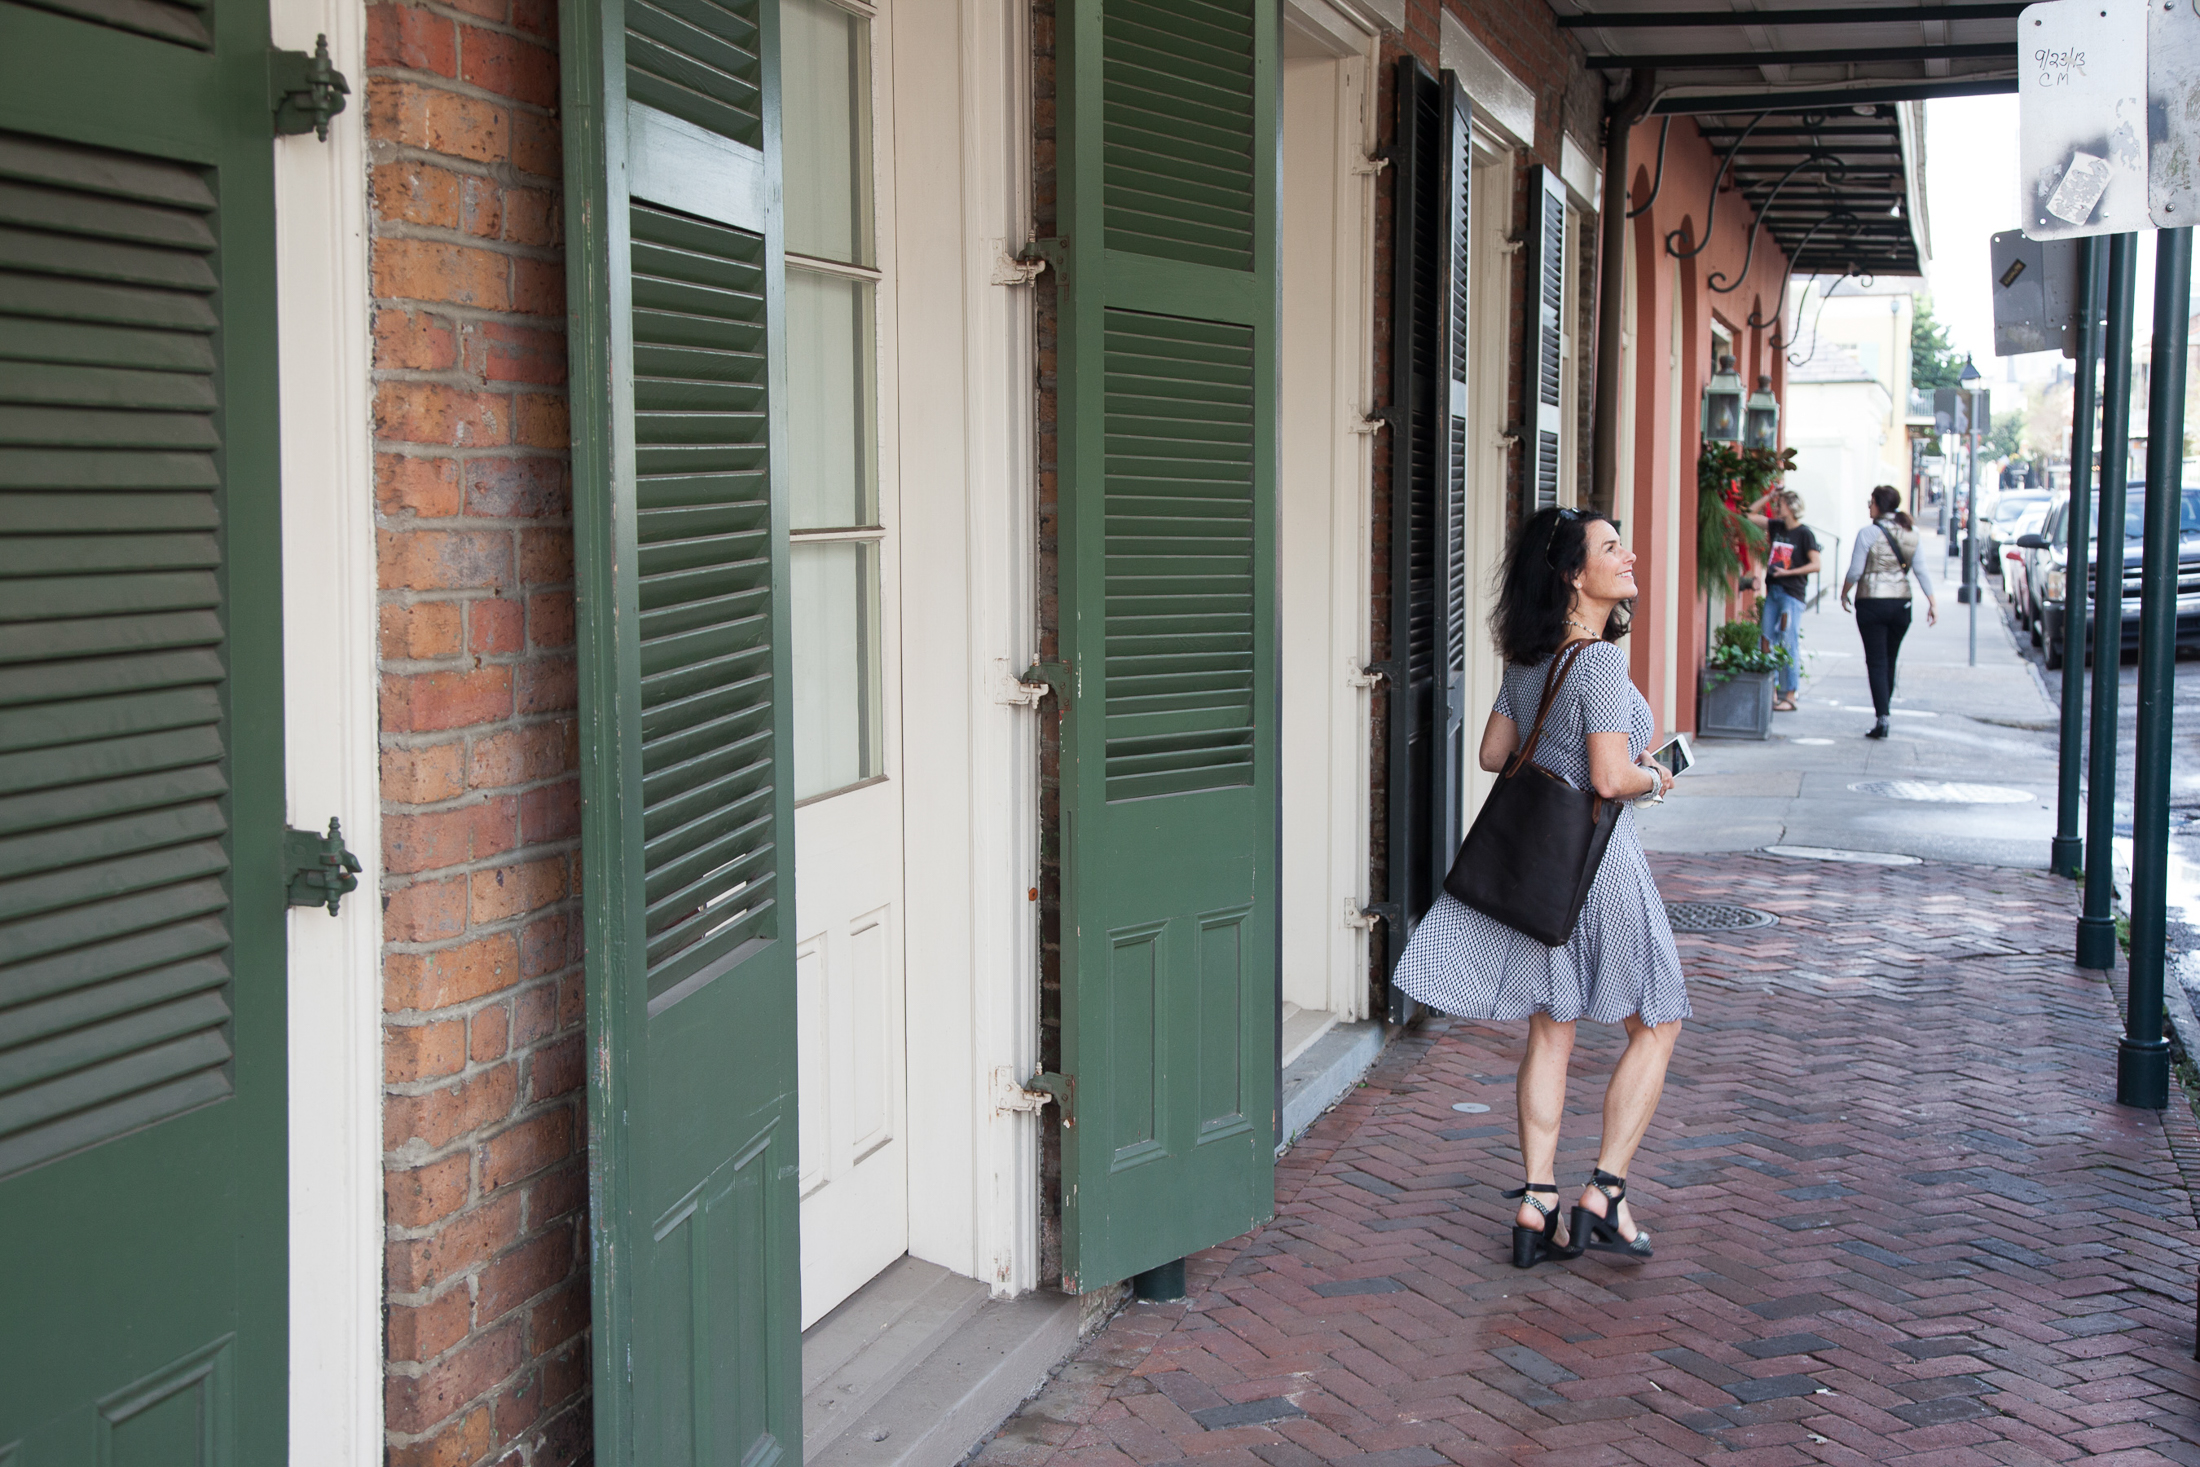 LaLaurie selects Nov 2018-4501.jpg